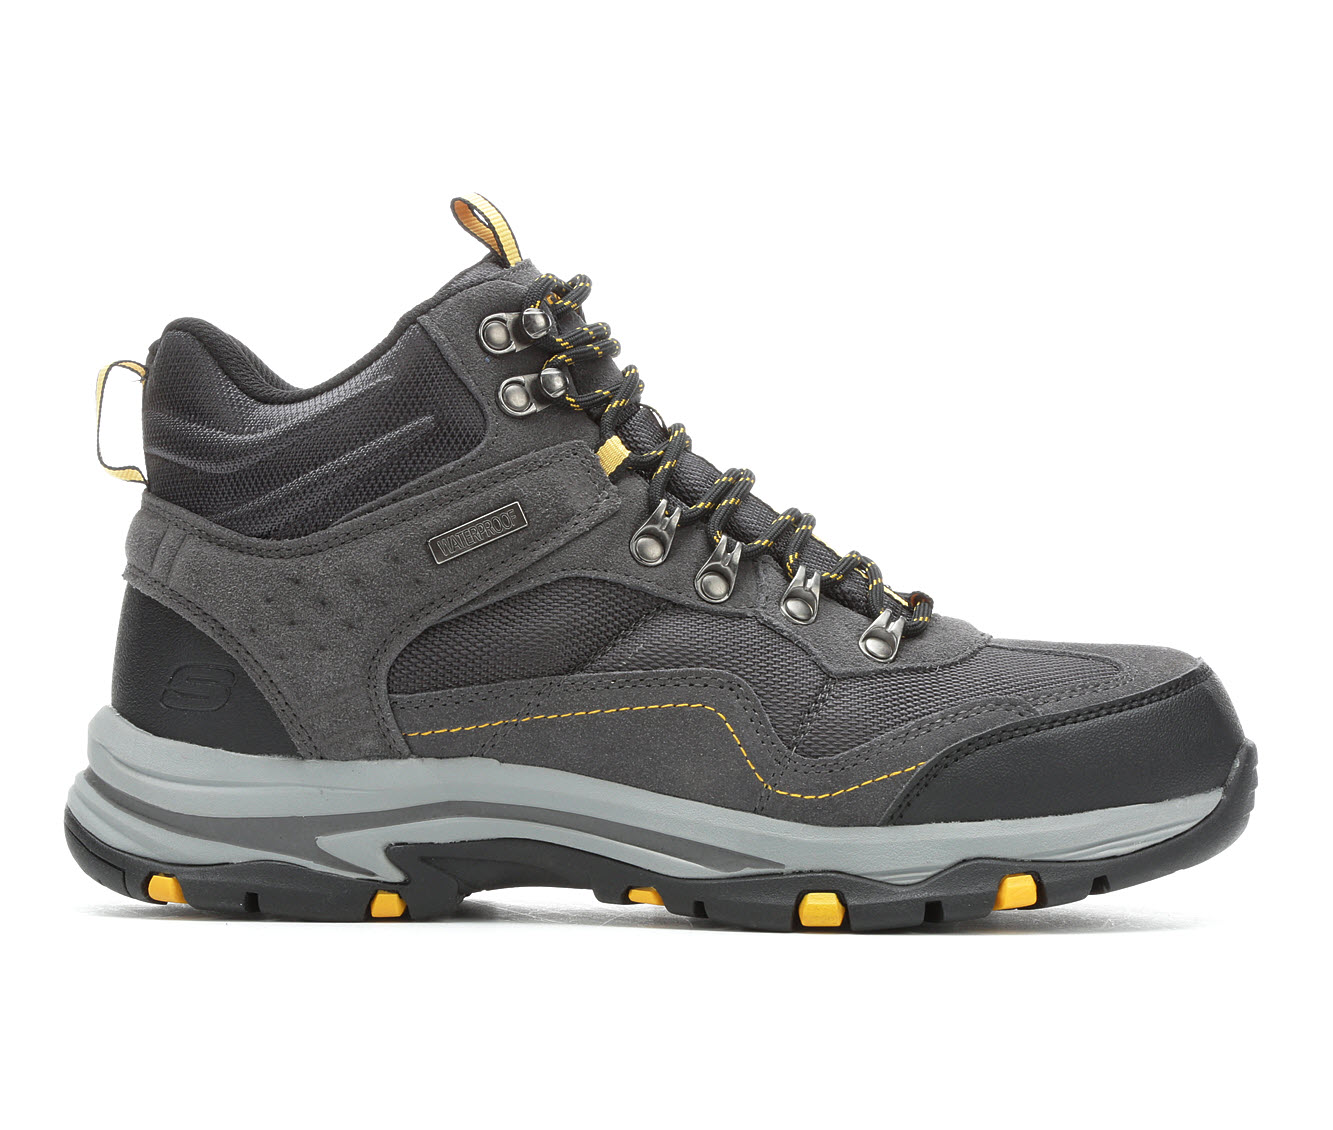 Skechers Pacifico 65672 Men's Boots (Gray Leather)